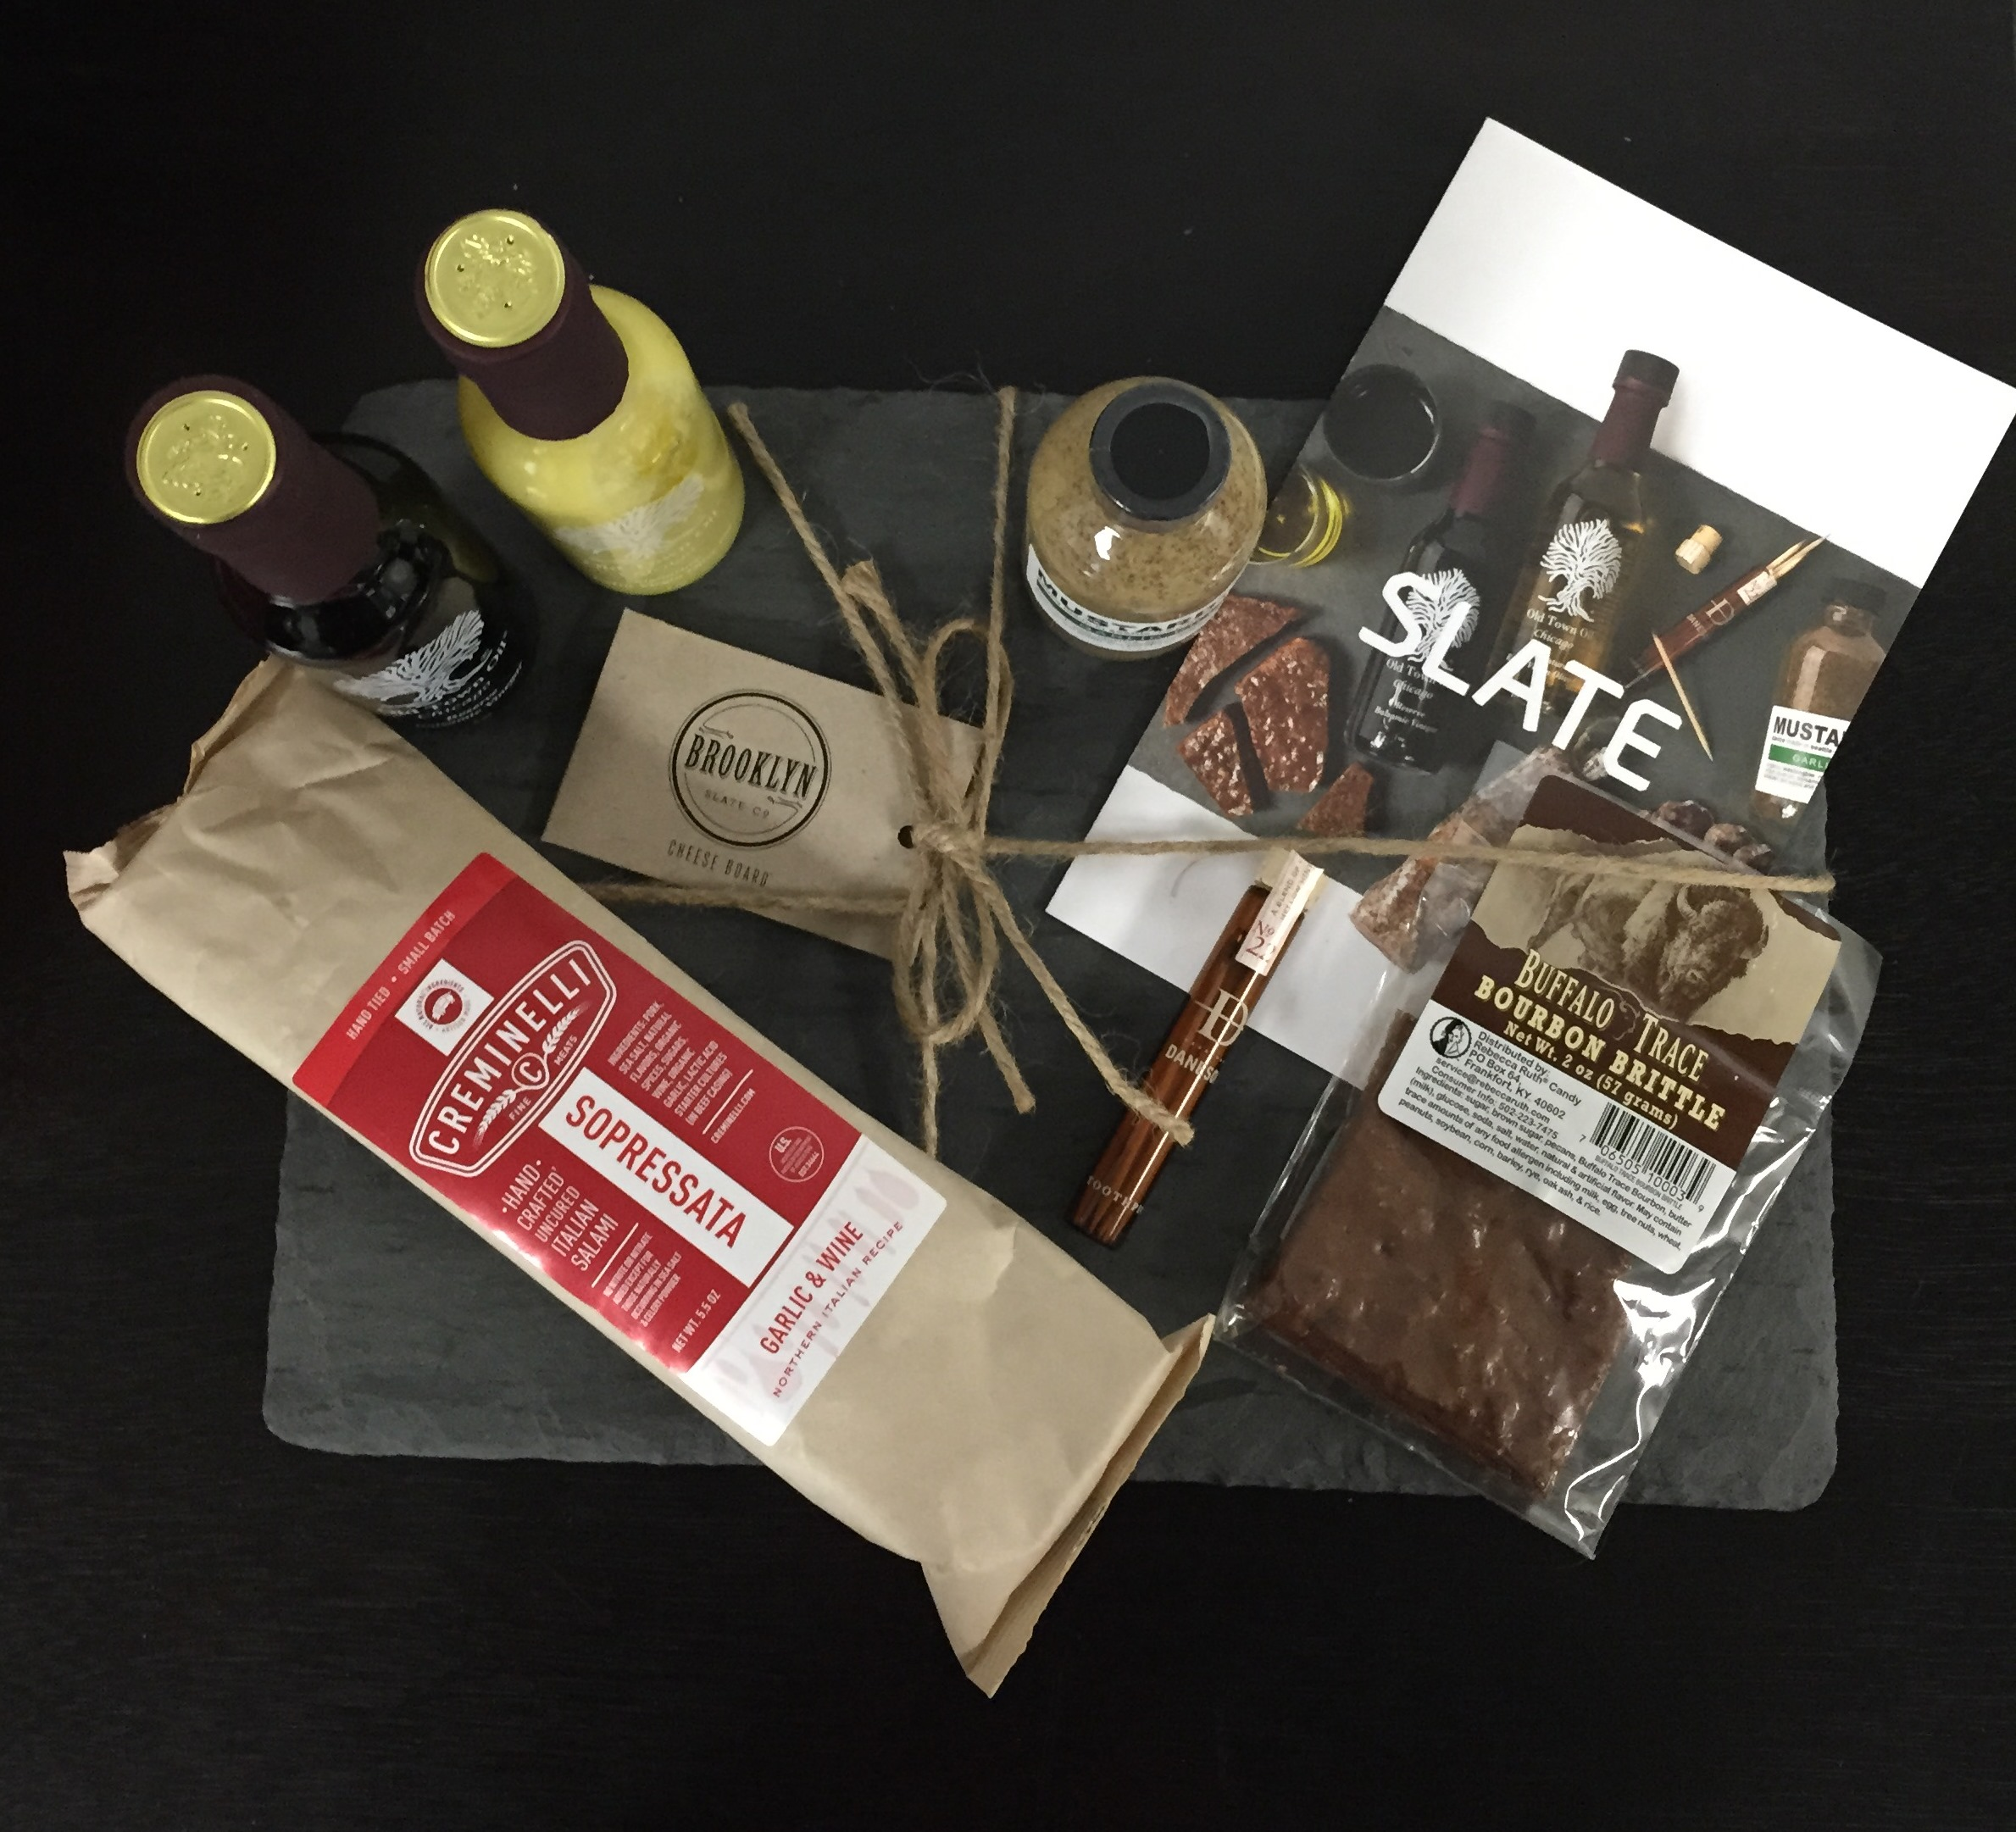 Subscription Box Company Bespoke Post in Affiliate Marketing